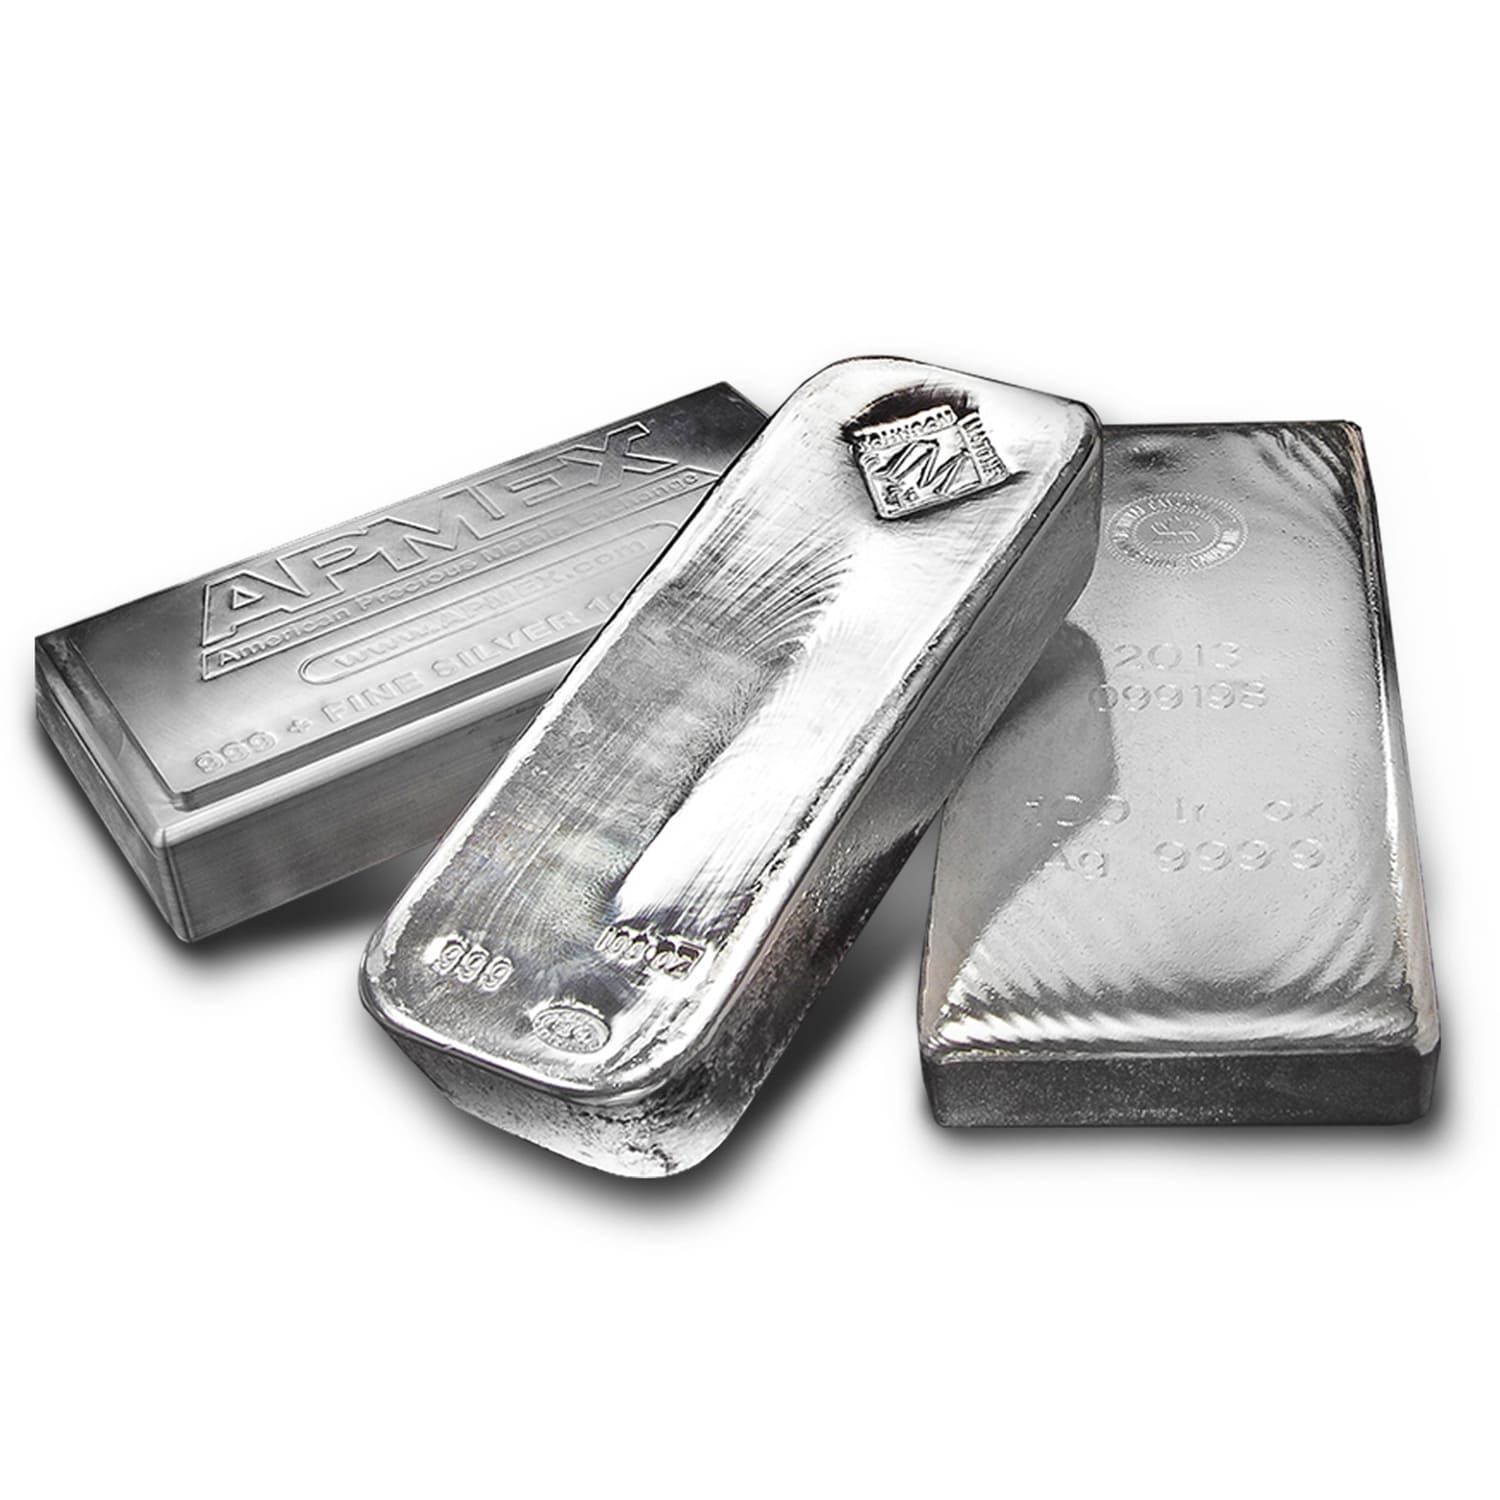 99.05 oz Silver Bars - Secondary Market